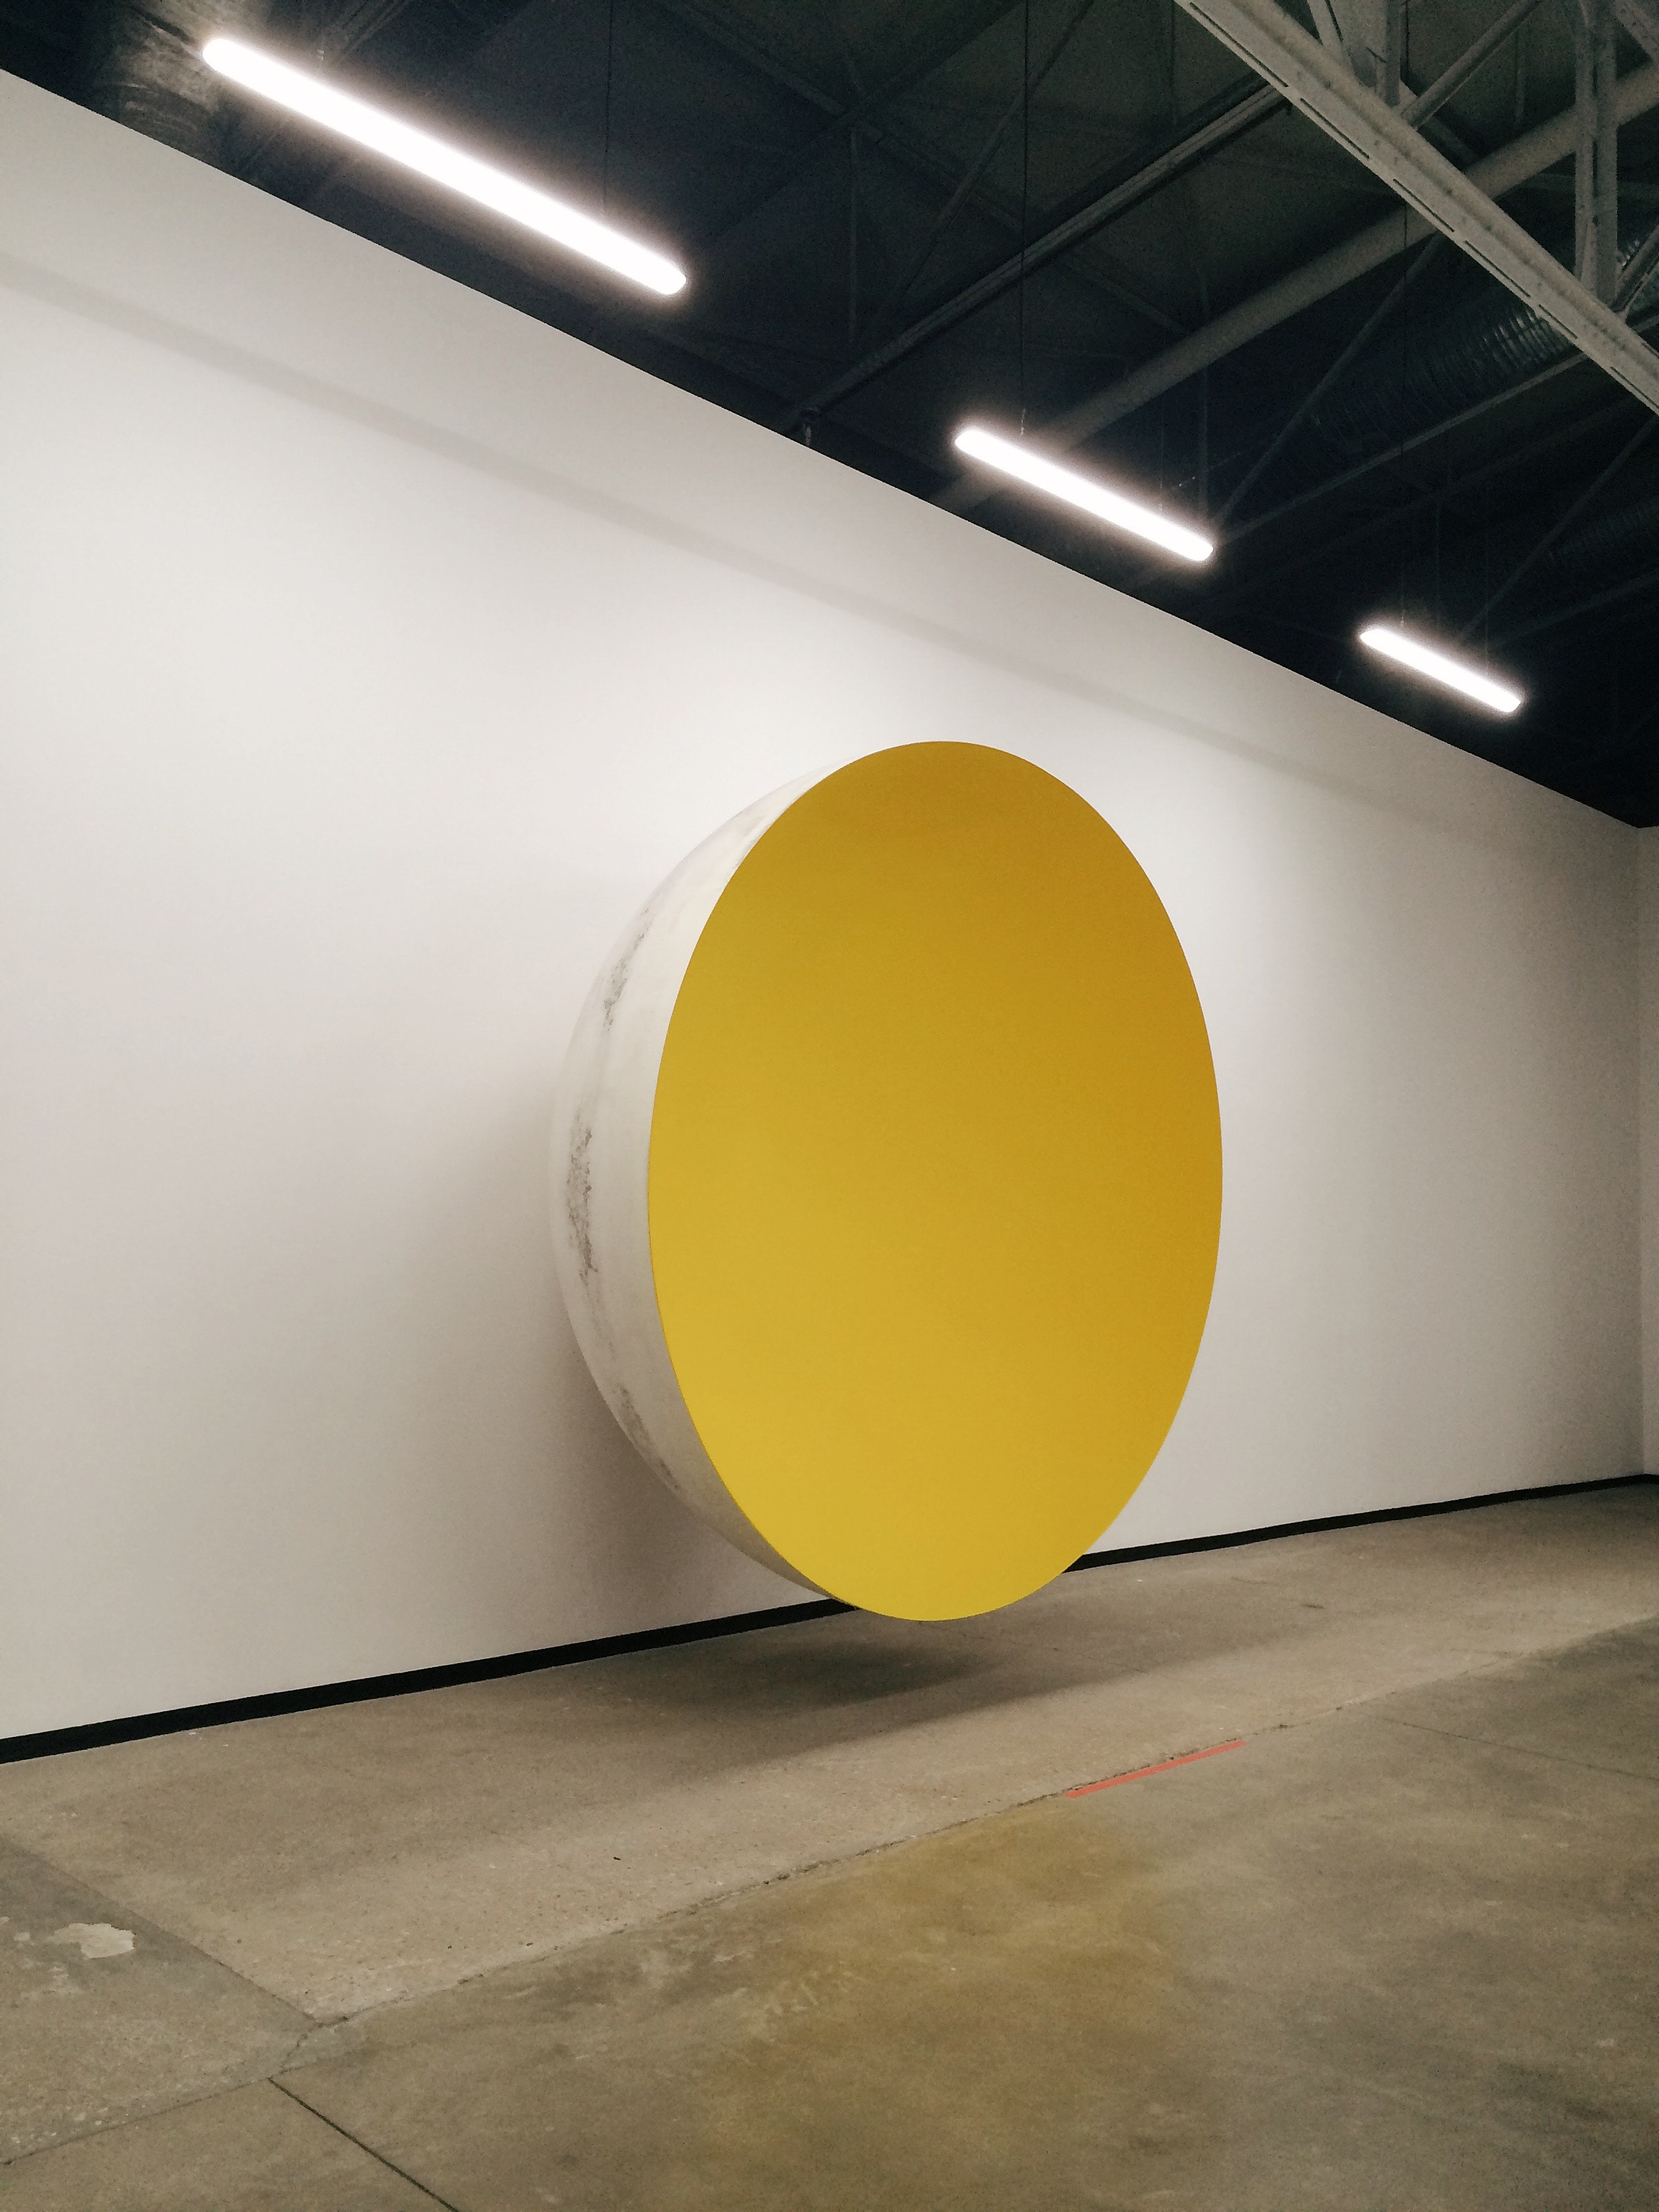 Yellow and White Bowl on Wall · Free Stock Photo